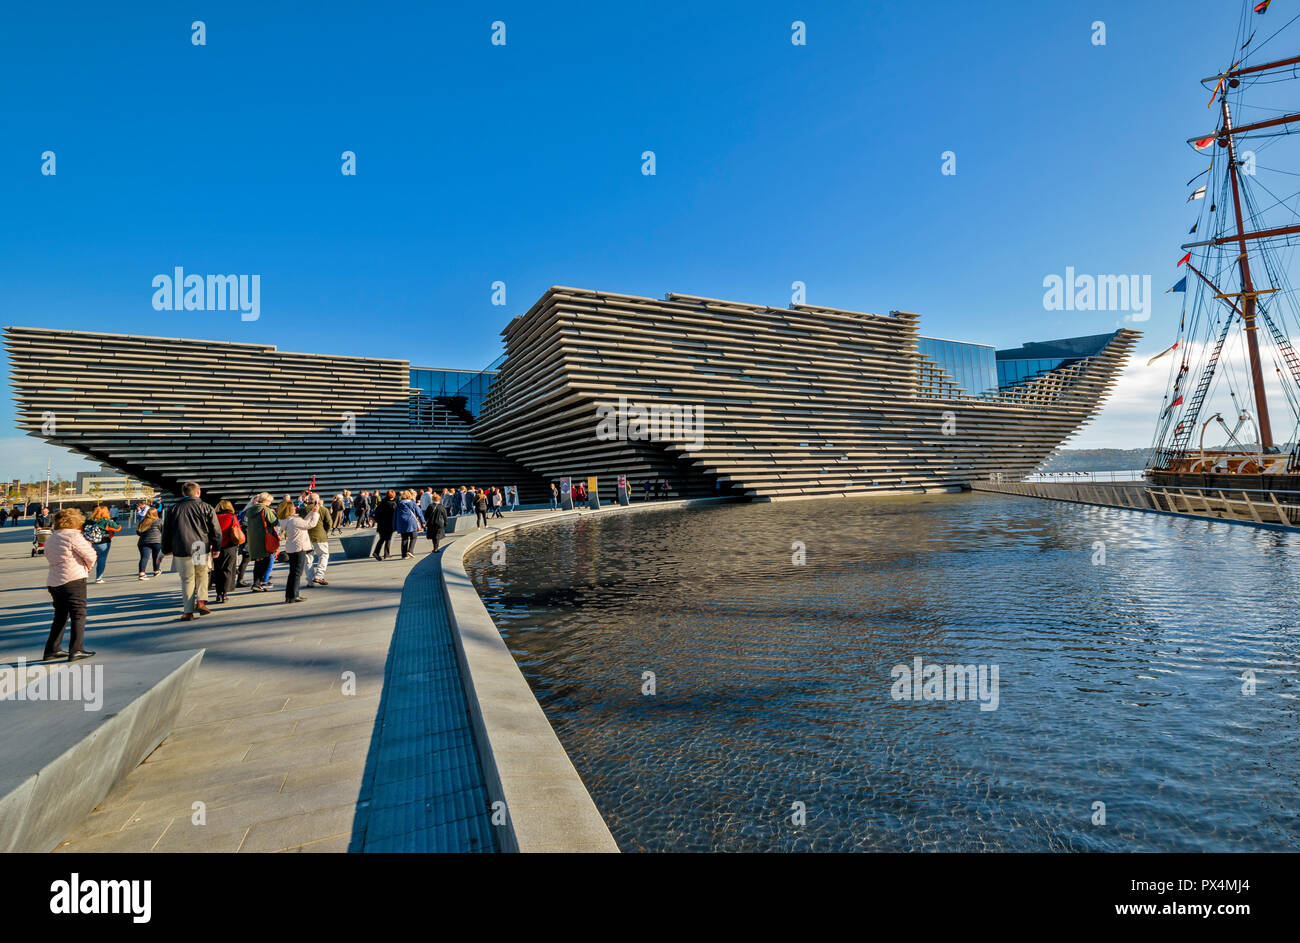 V & A MUSEUM OF DESIGN DUNDEE SCOTLAND THE BUILDING AND MORNING VISITORS Stock Photo